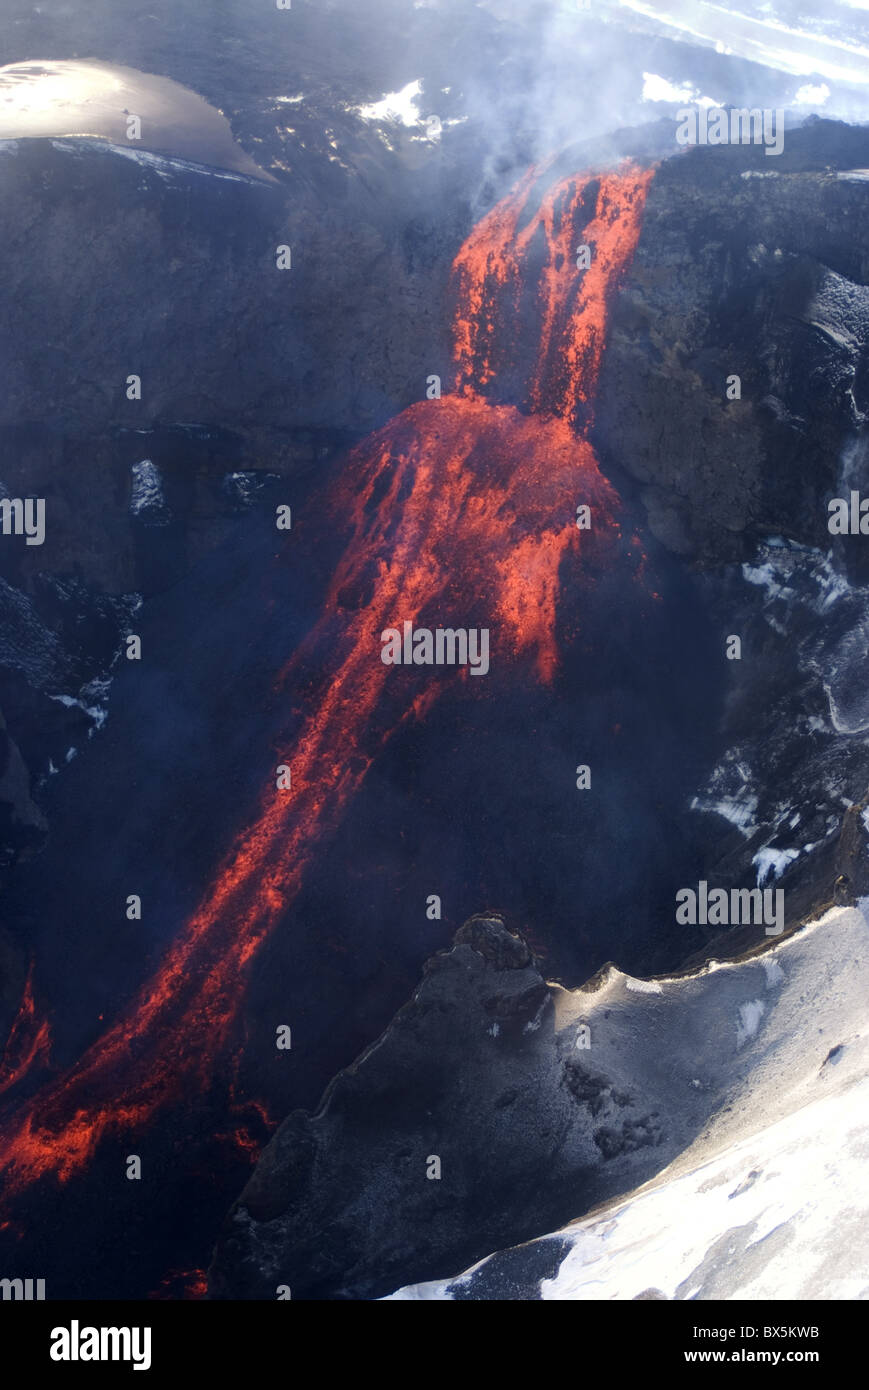 Lava flowing down mountain from Eyjafjallajokull volcano, Iceland, Polar Regions - Stock Image